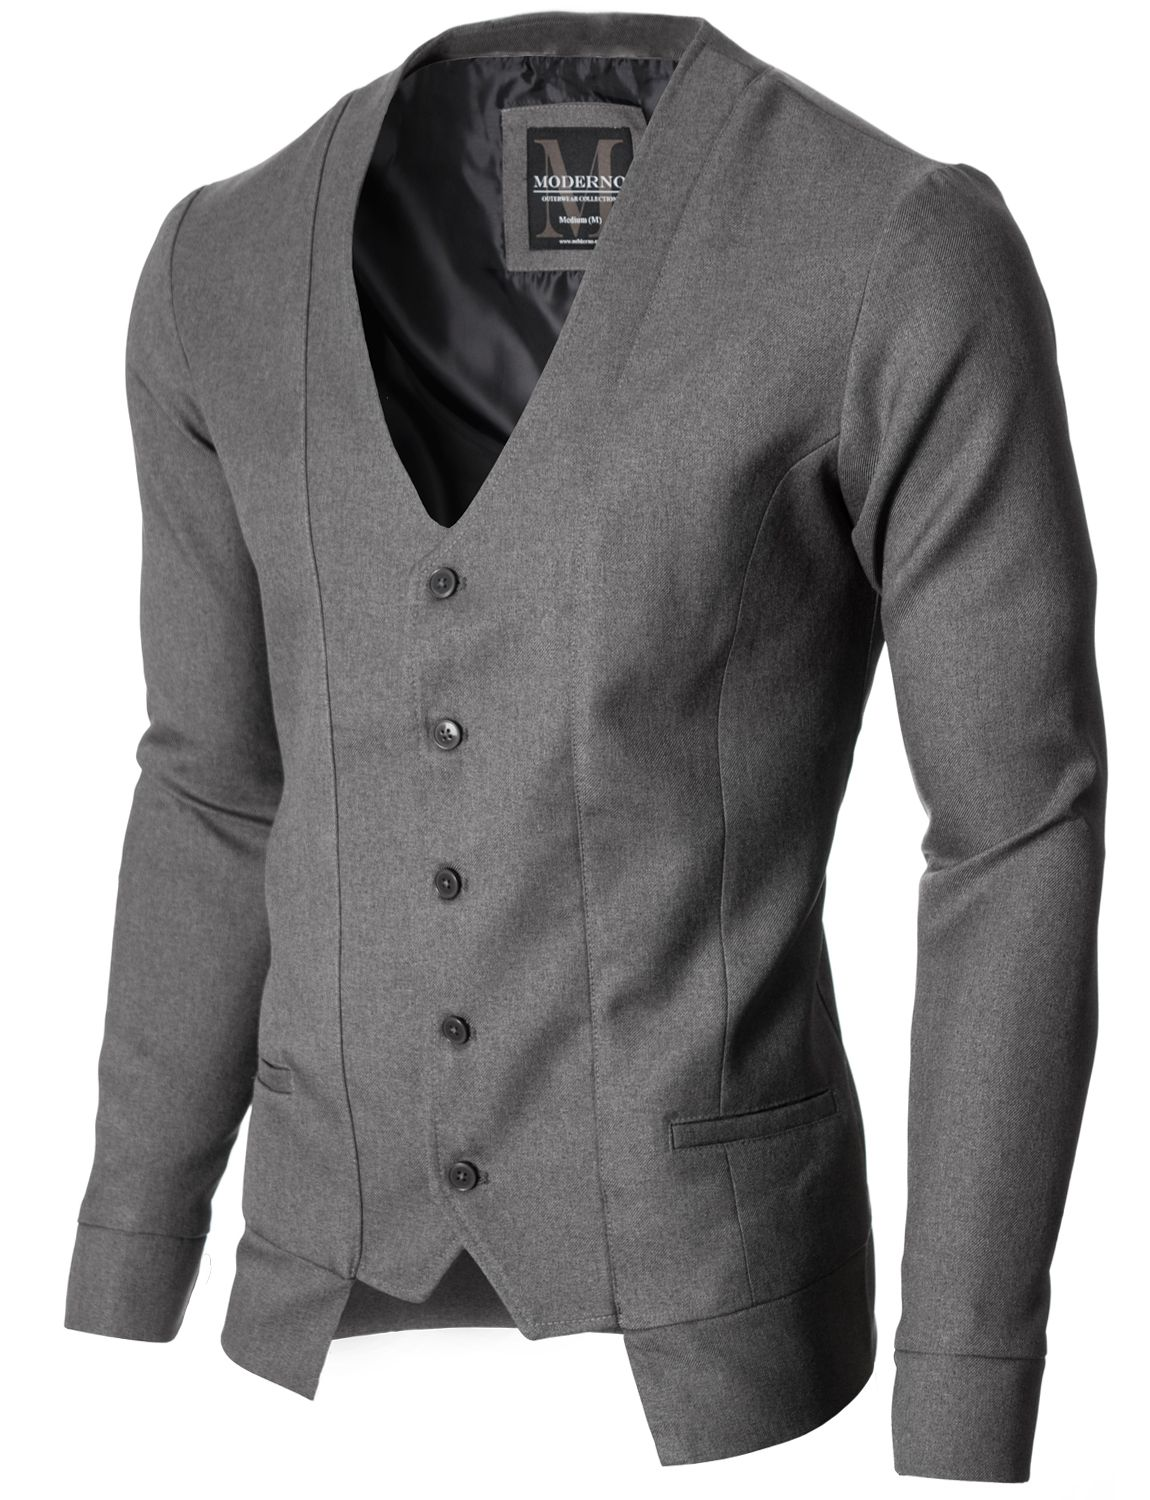 MEN FALSE TWO PIECES SLIM FIT STAND COLLAR LONG SLEEVE CARDIGAN SWEATER NICE